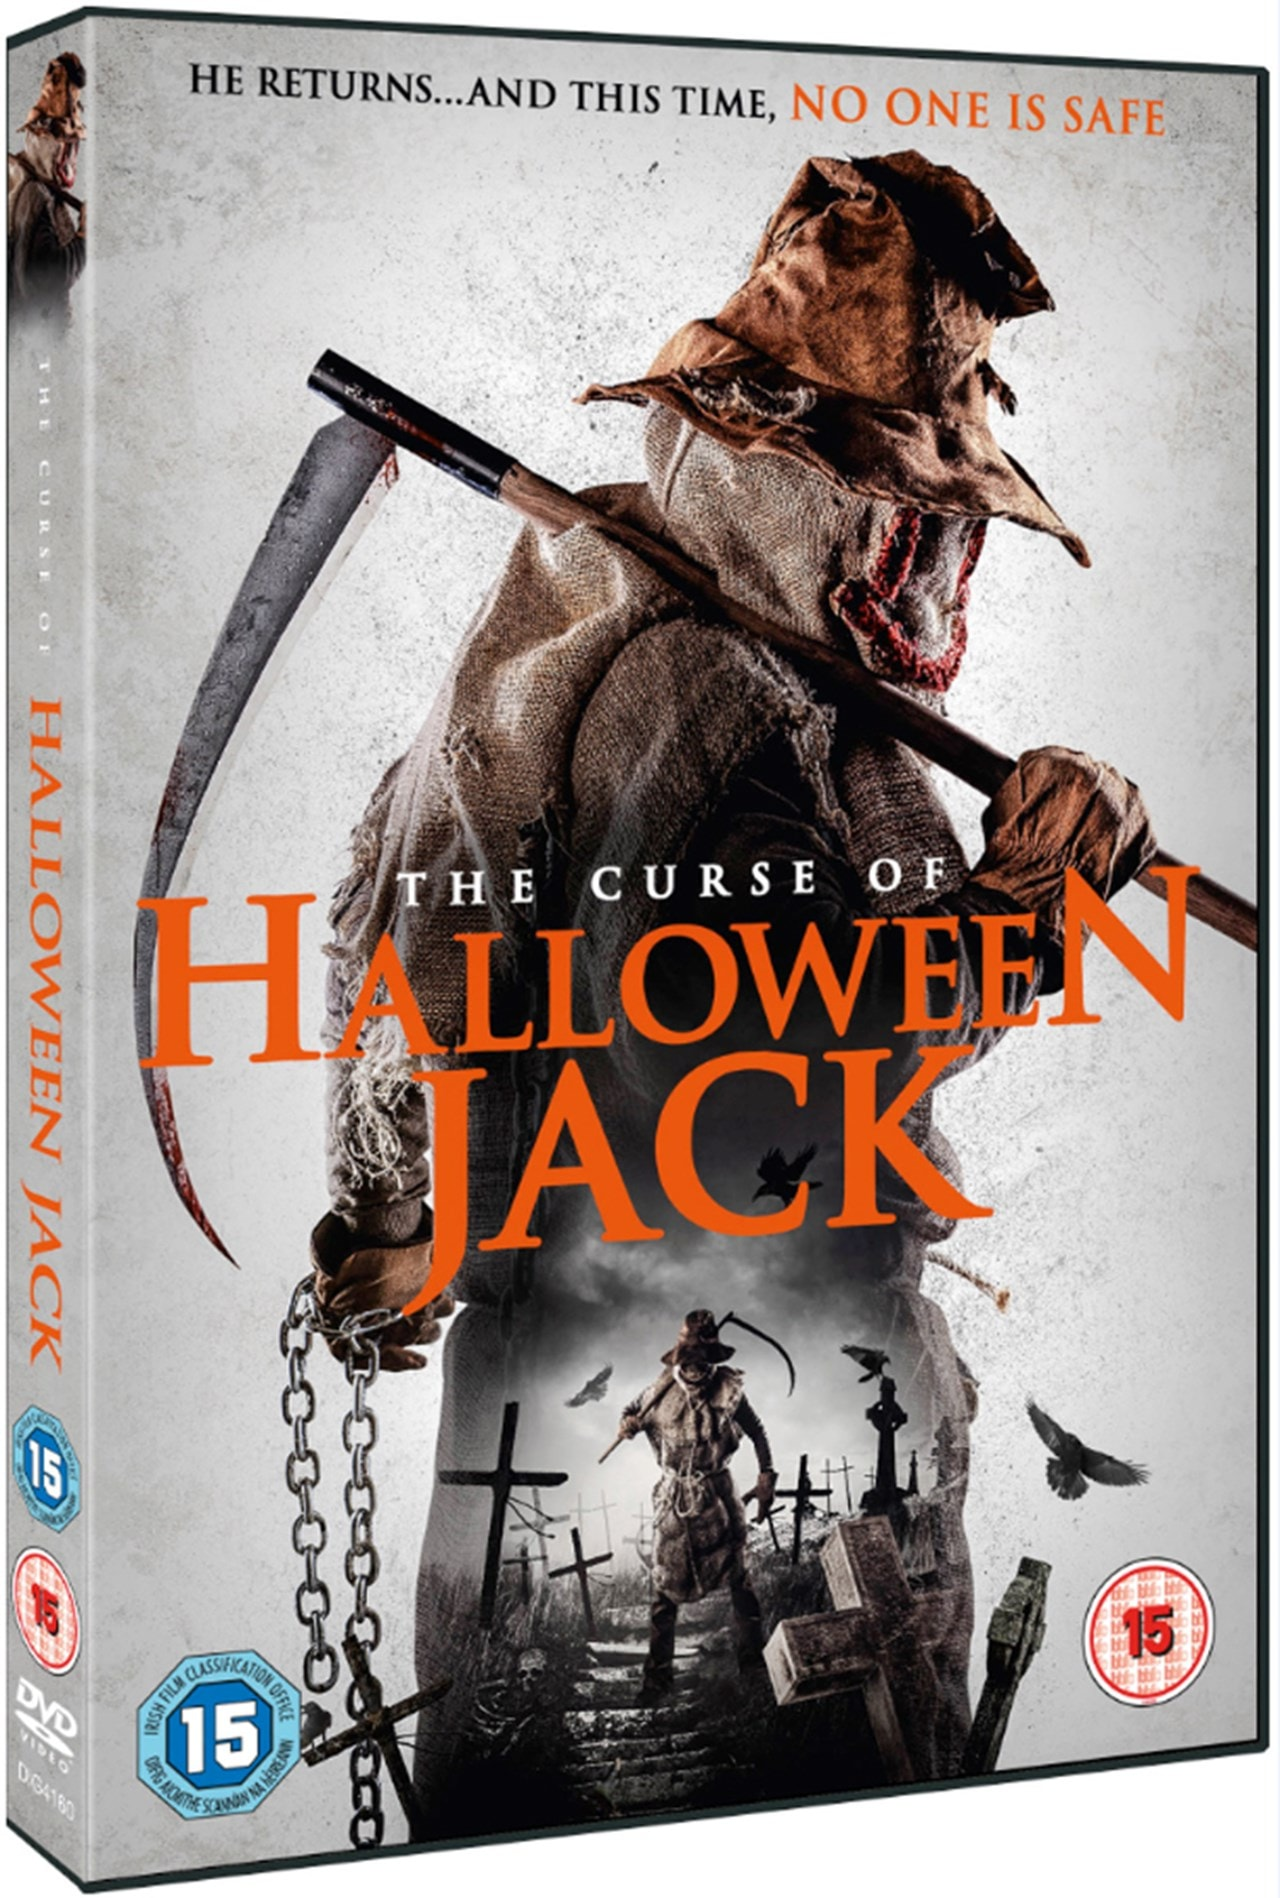 The Curse of Halloween Jack - 2